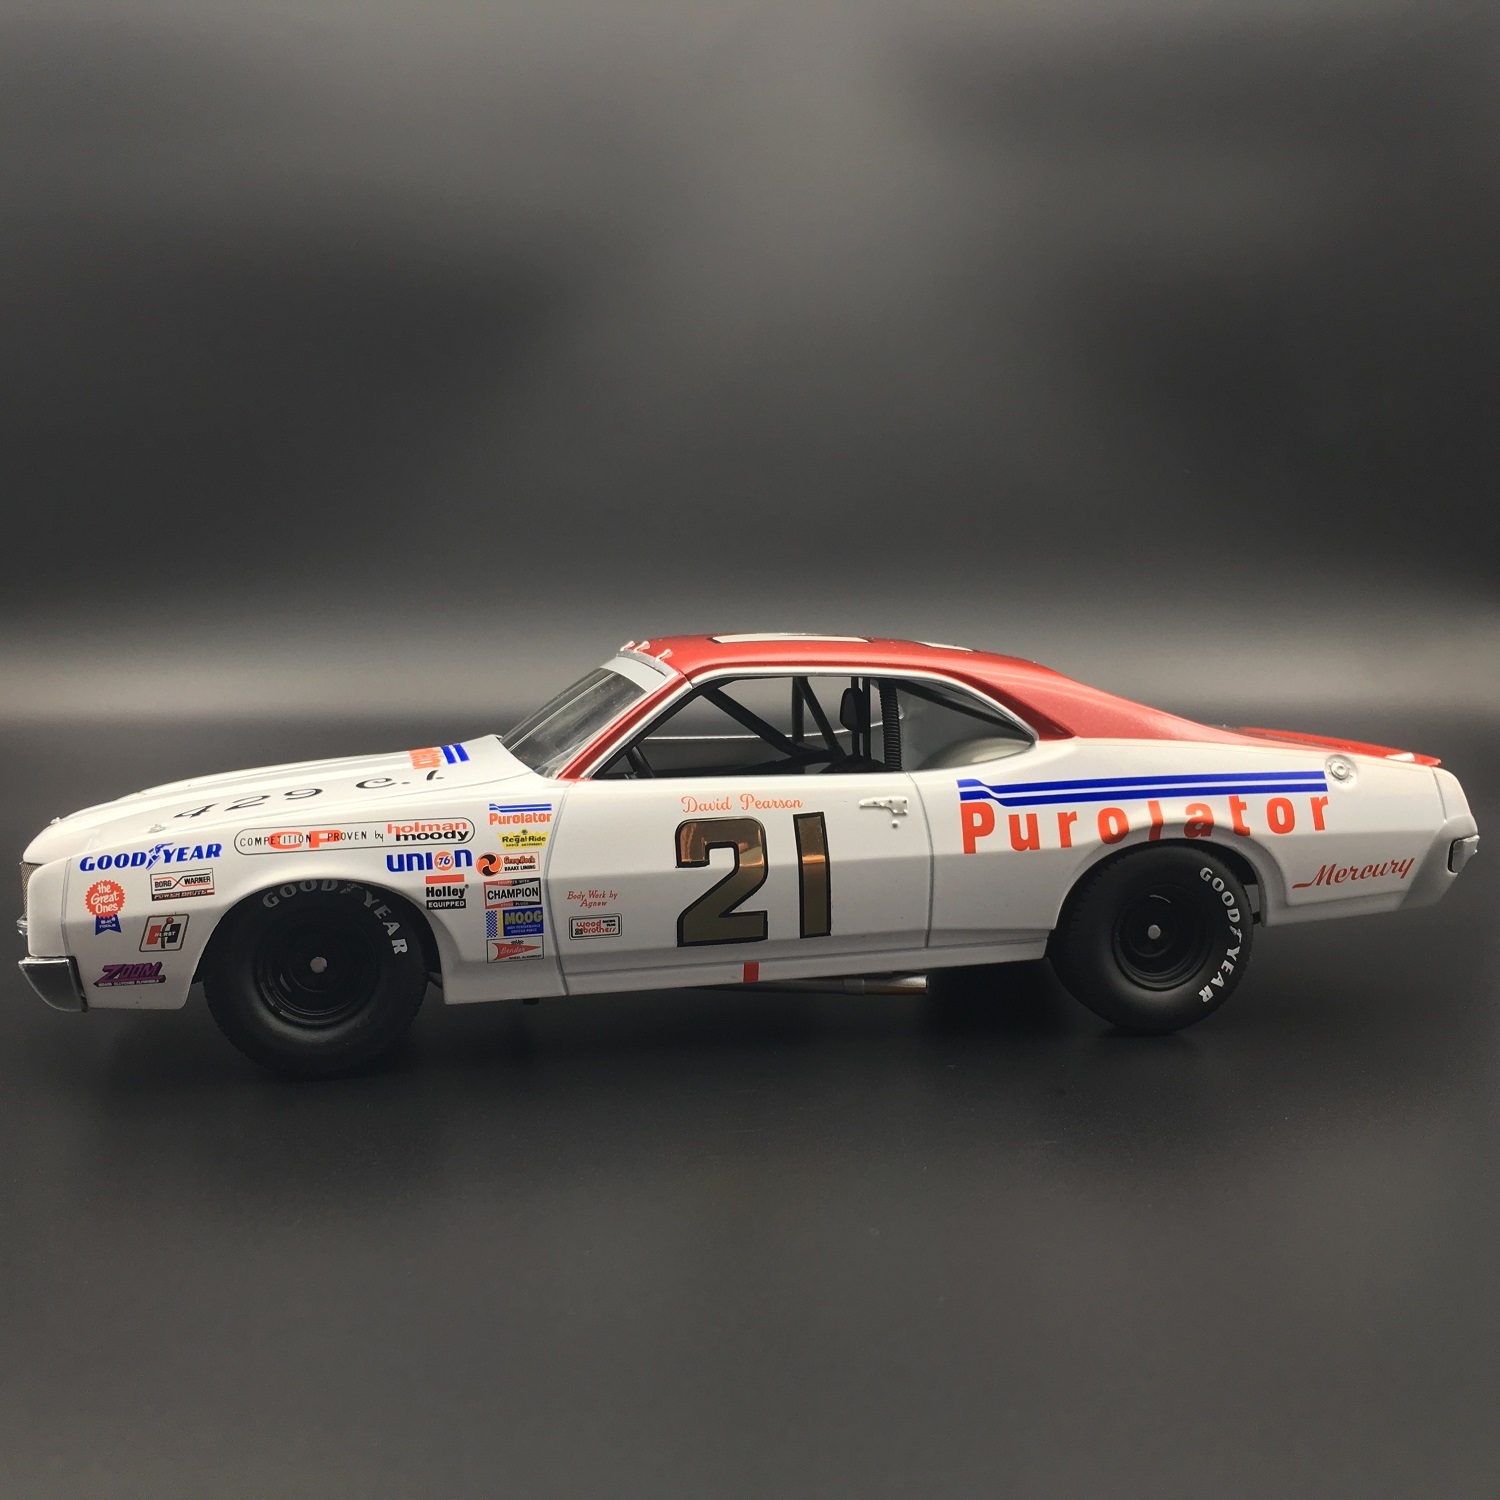 David Pearson 1971 Purolator Mercury Cyclone 1:24 University Of Racing Diecast